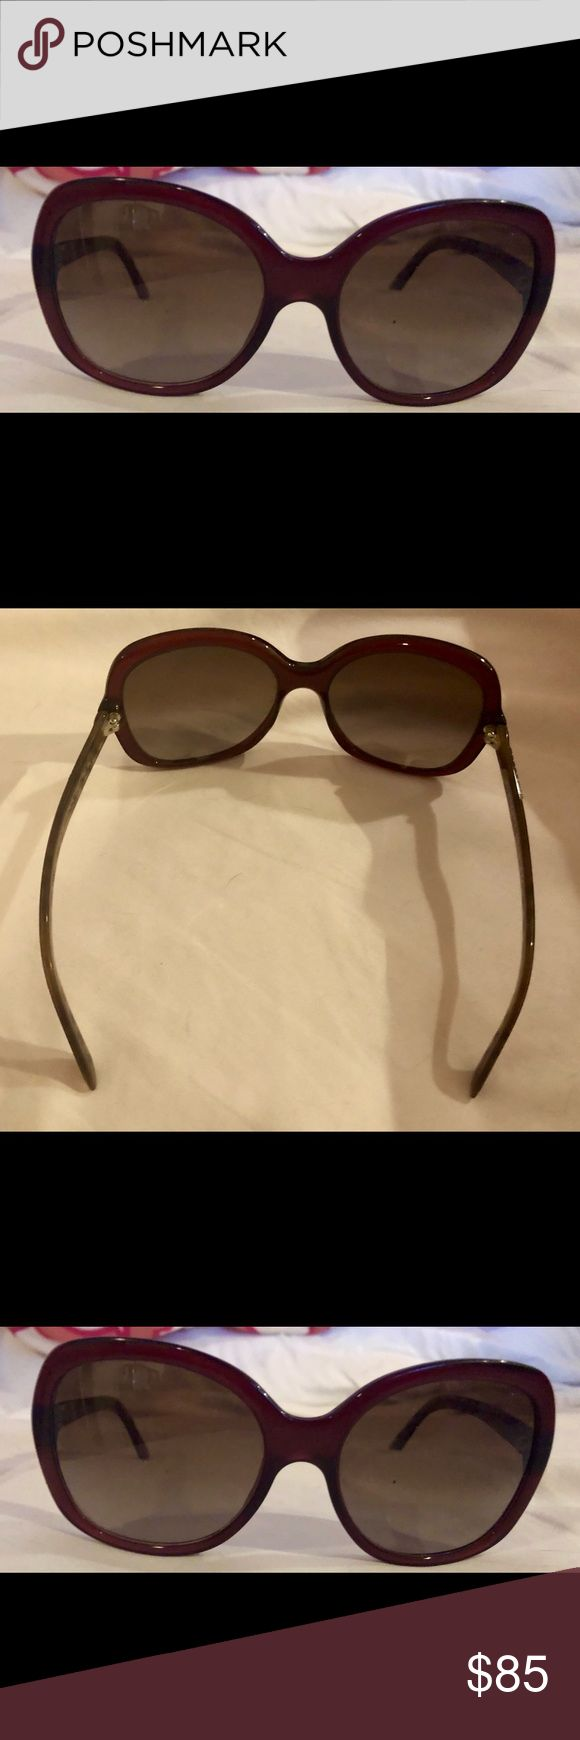 Burberry Sunglasses Gently worn authentic Burberry sunglasses. Beautiful deep maroon color with Burberry pattern on both sides. Large, fashionable frames (not polarized). Burberry case that comes with the glasses is dirty from sitting in purses, but the glasses are fine! Burberry Accessories Sunglasses